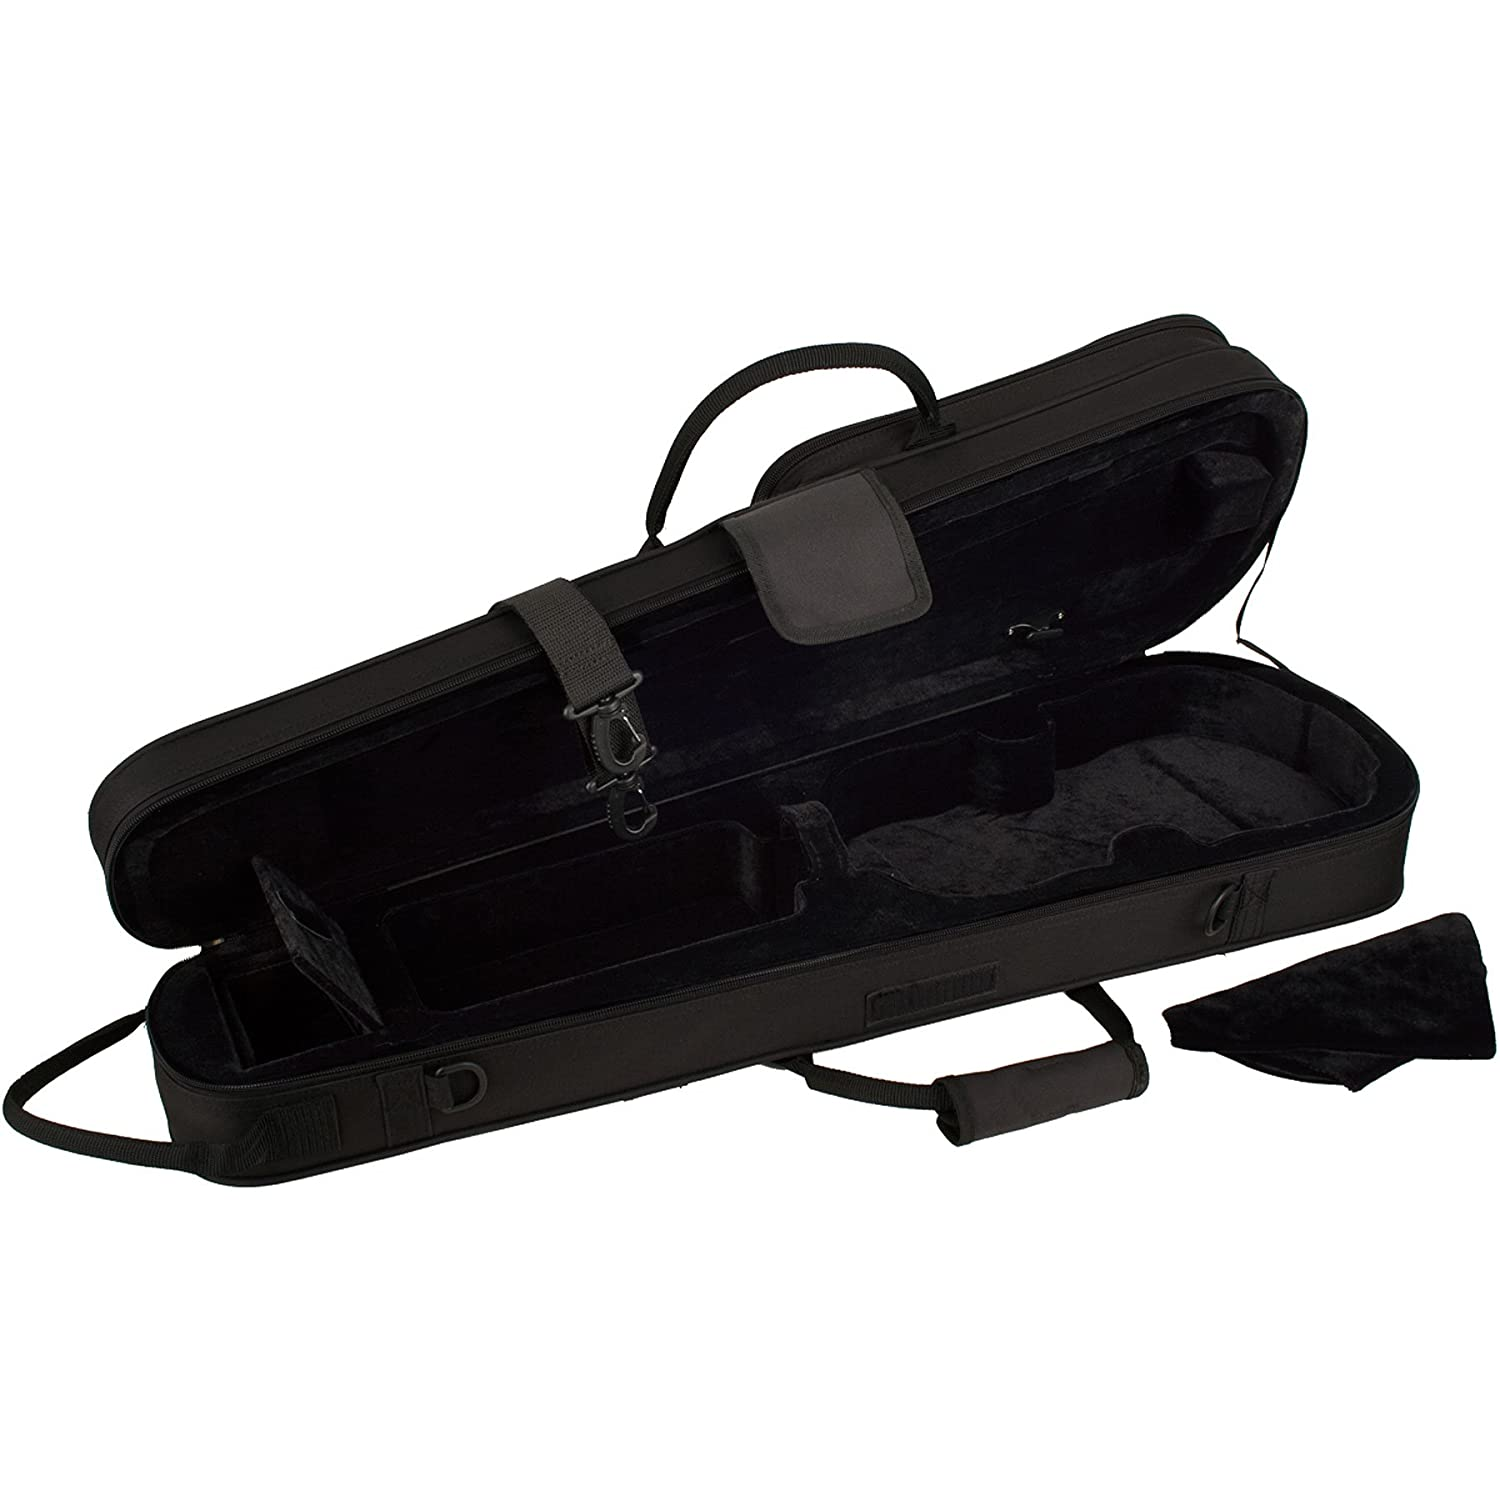 Top 17 Best Violin Cases (2020 Reviews & Buying Guide) 3